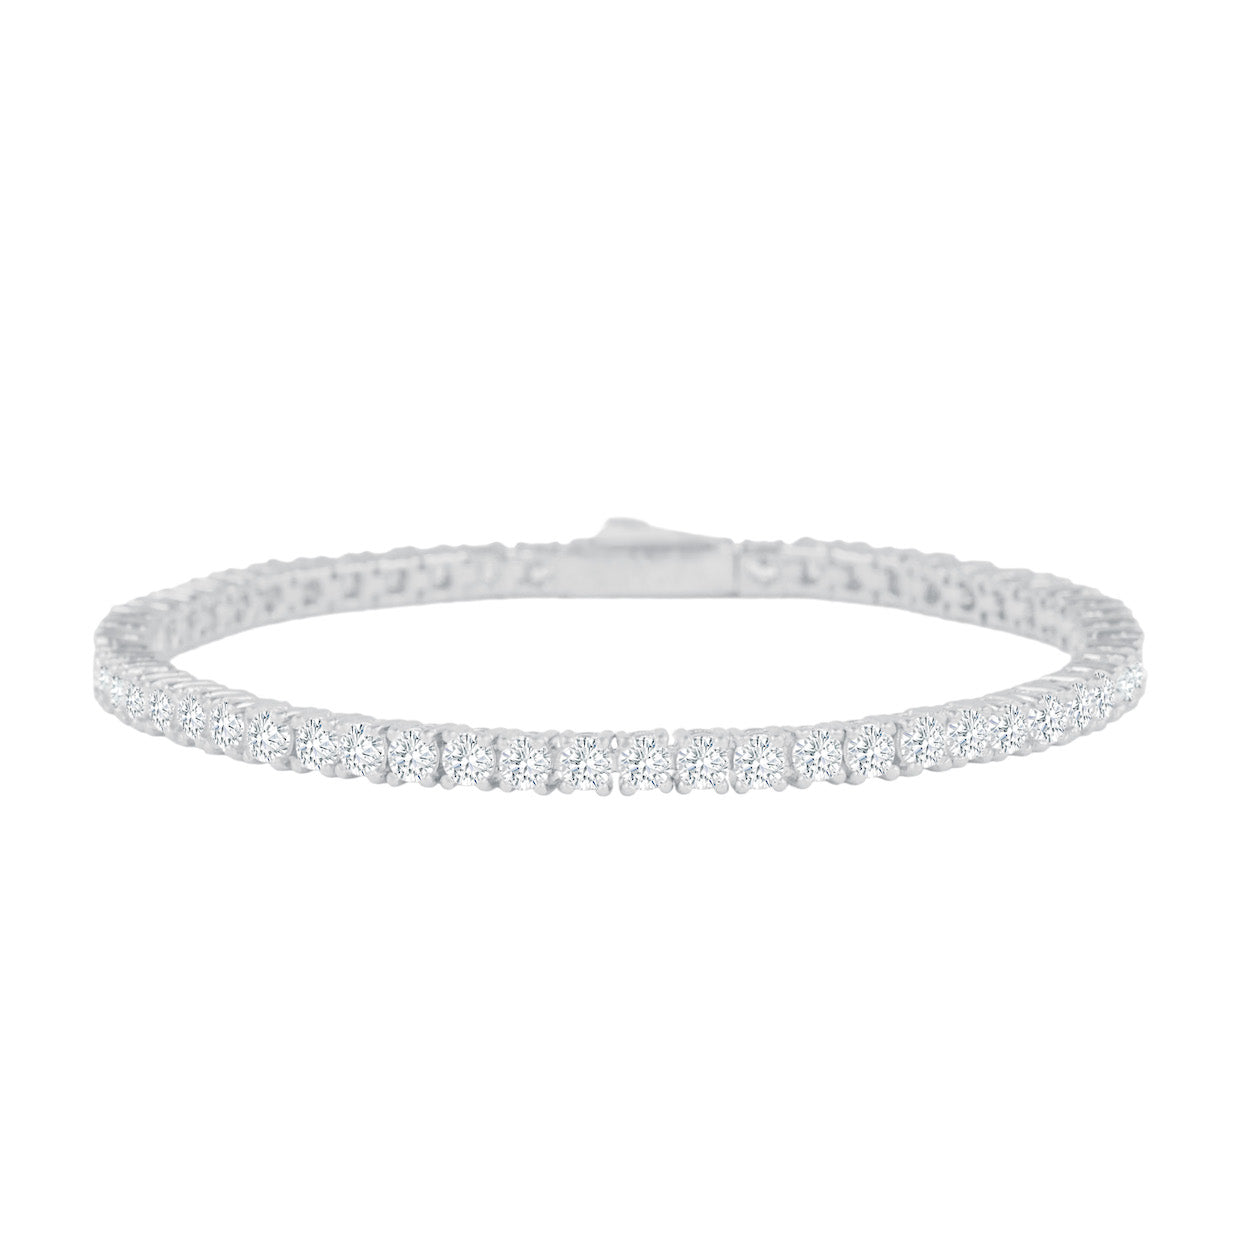 Gold City Luxury Diamond Tennis Bracelet